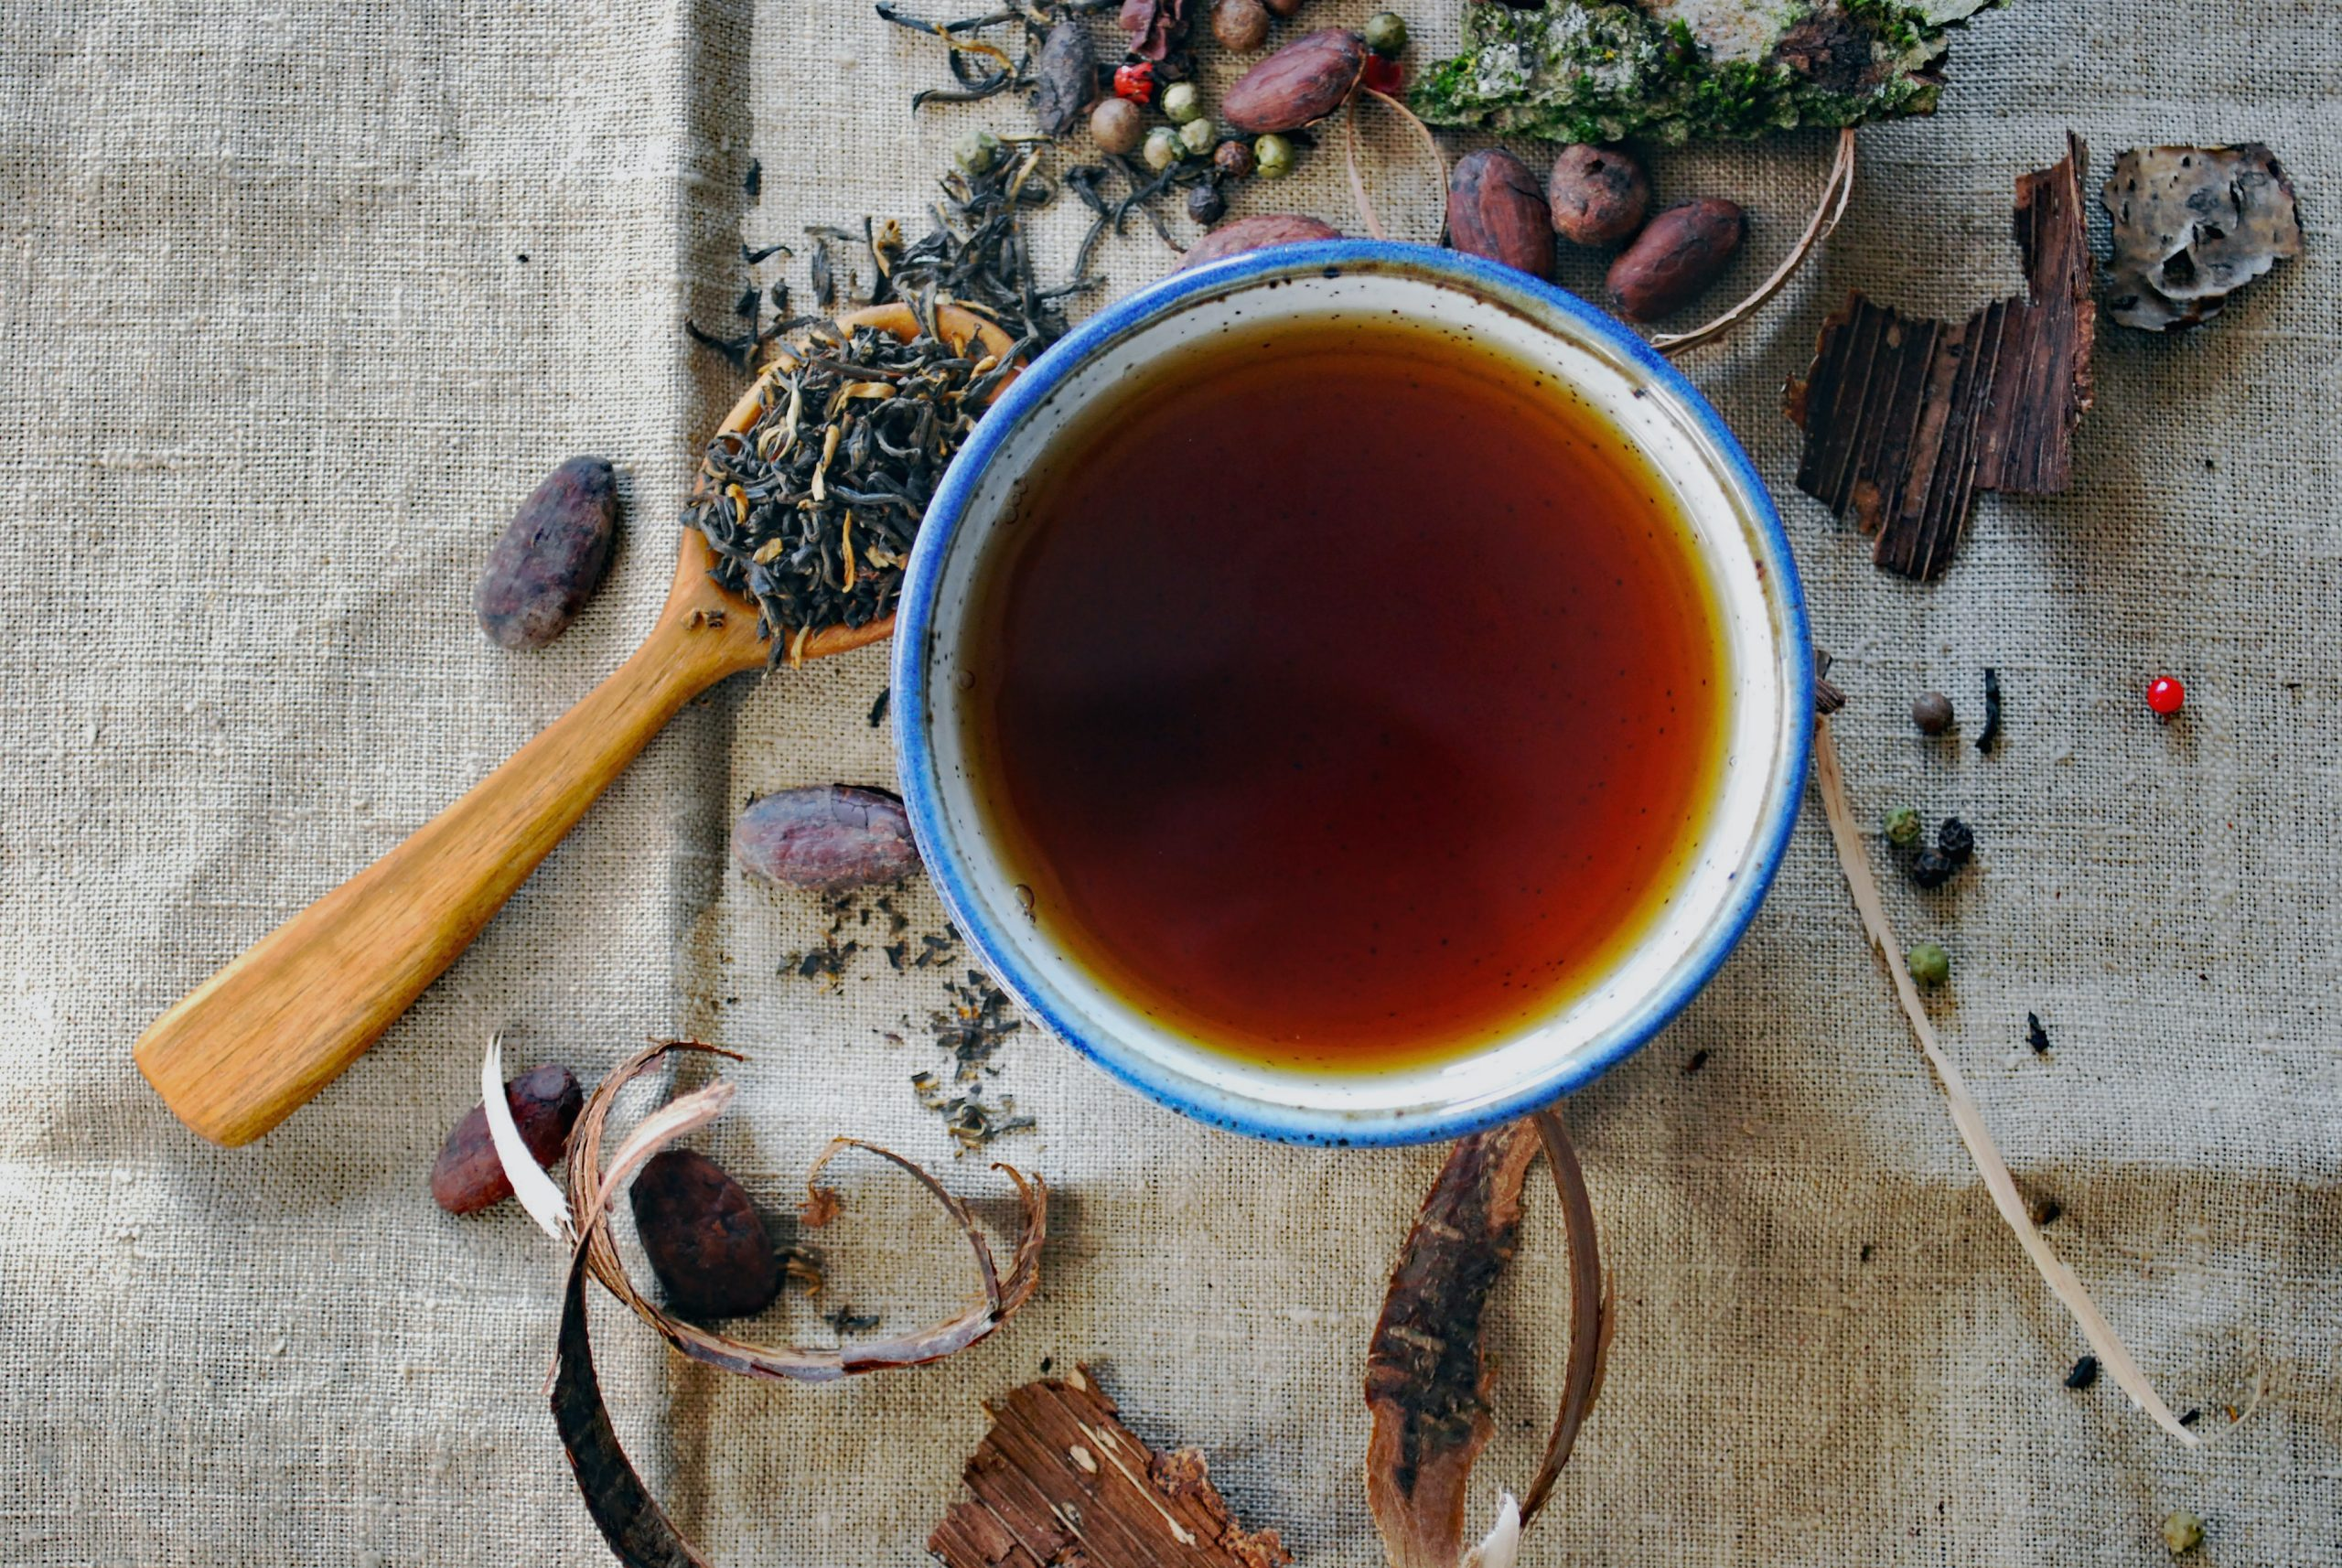 Cup of tea with dried herbs